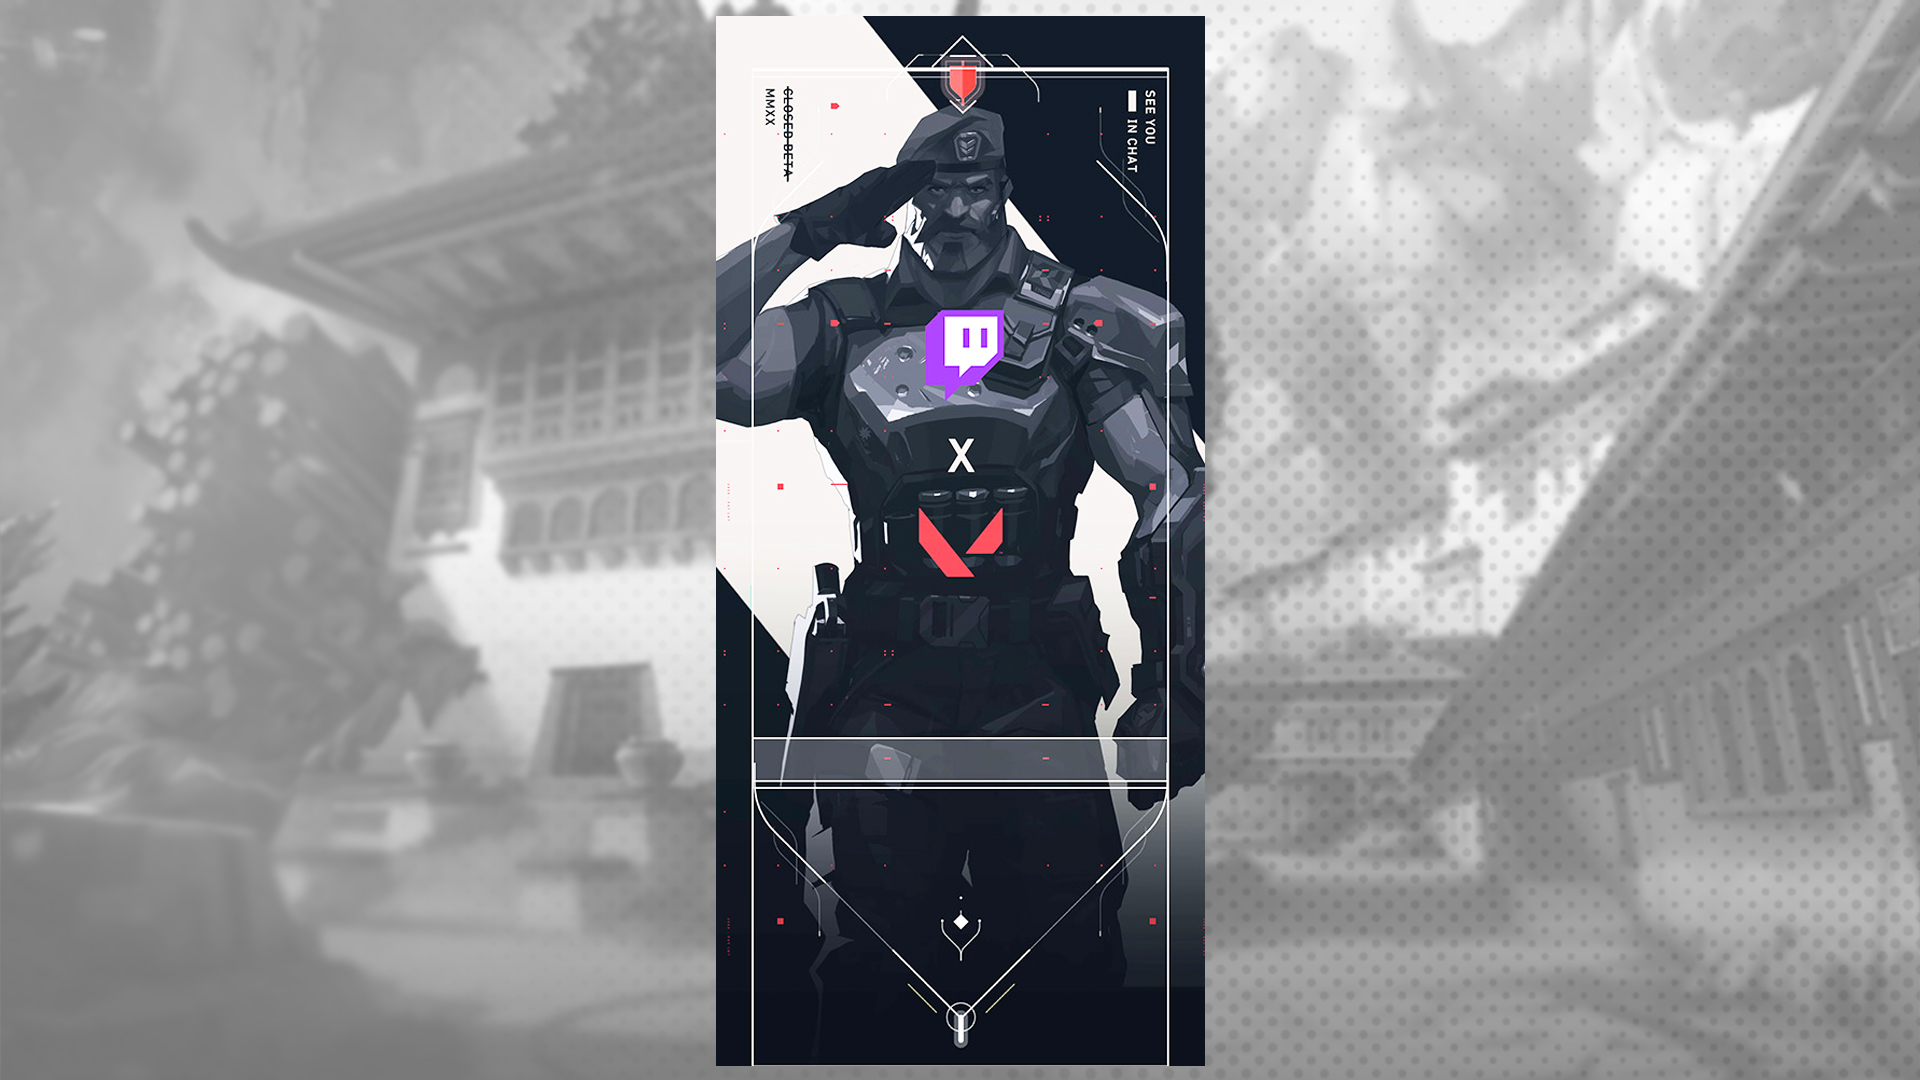 Valorant Twitch player card.